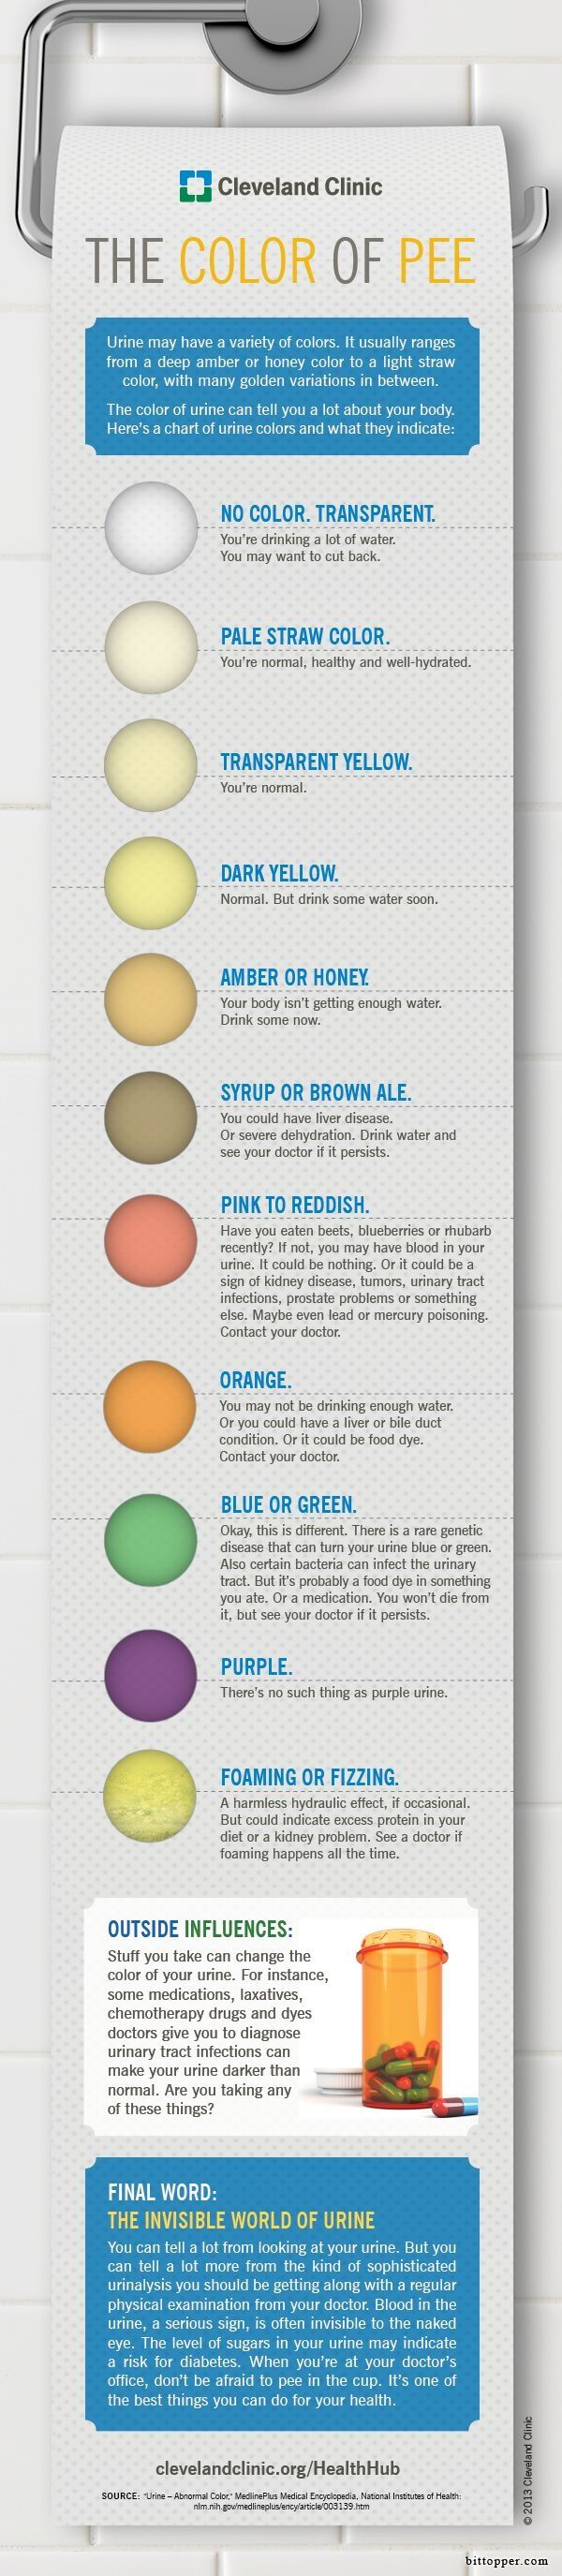 The color of your #pee says something about your #health. #urine #infographic via www.bittopper.com/post.php?id=467074037527ea23568e2f0.98192113